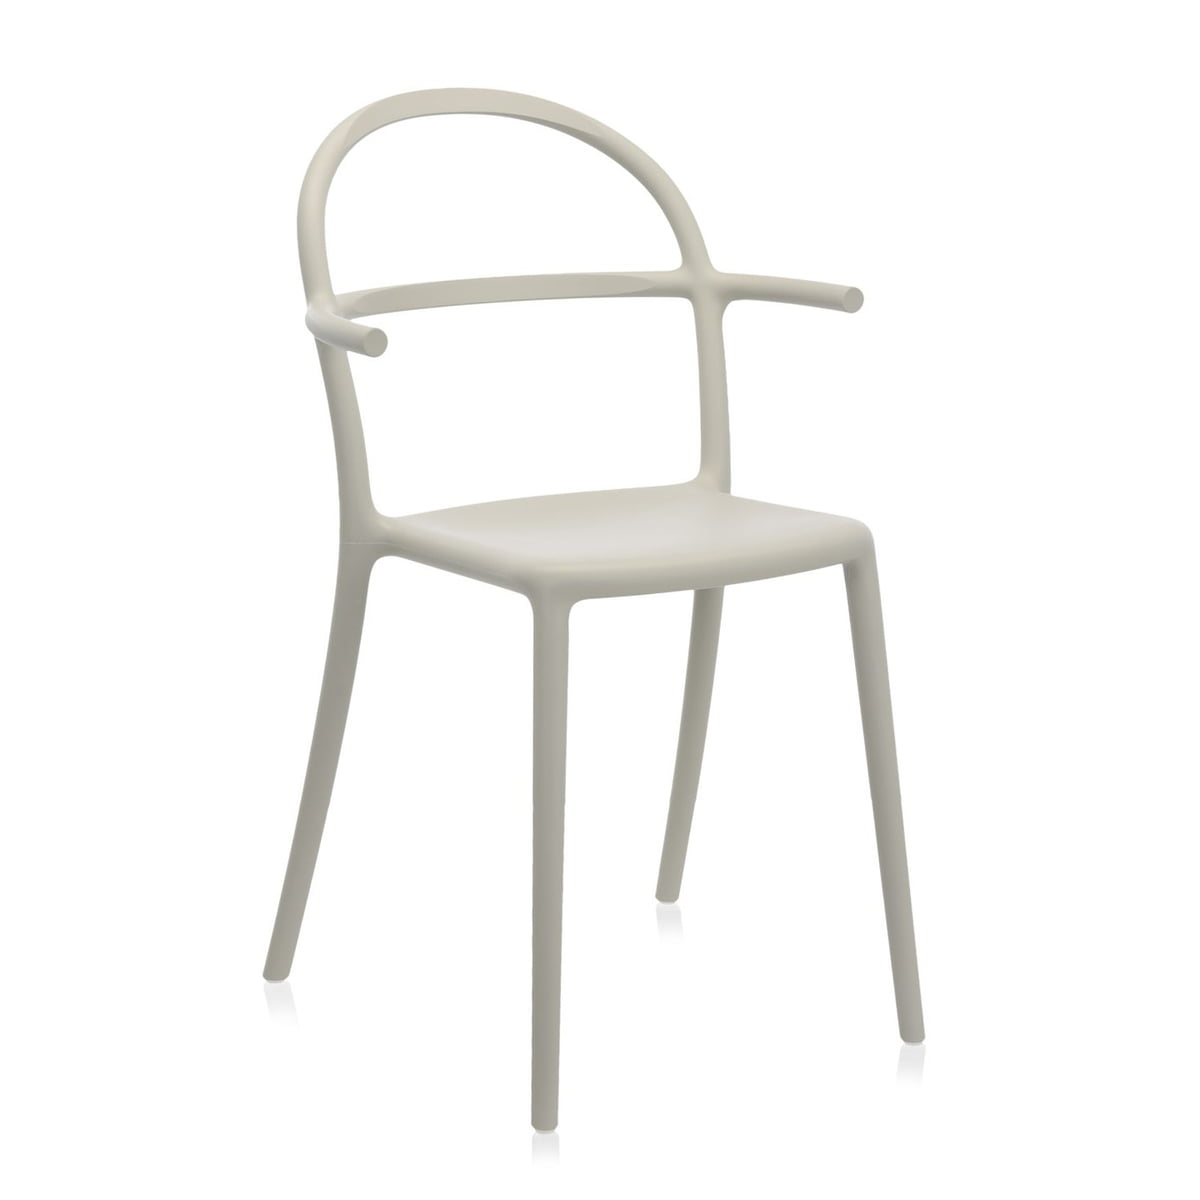 Kartell - Chaise Generic C, gris